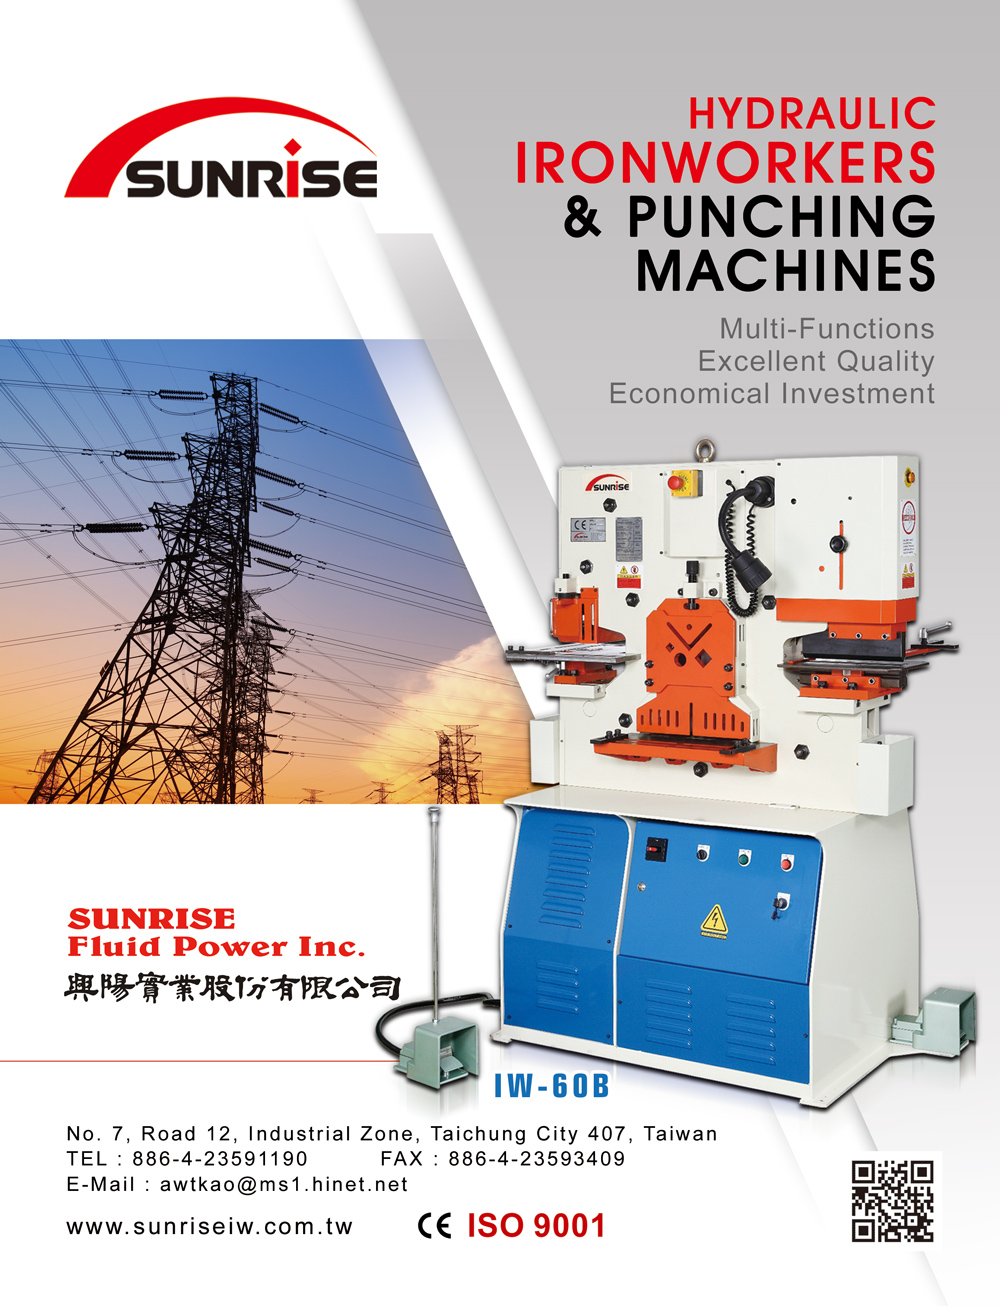 SUNRISE FLUID POWER INC.